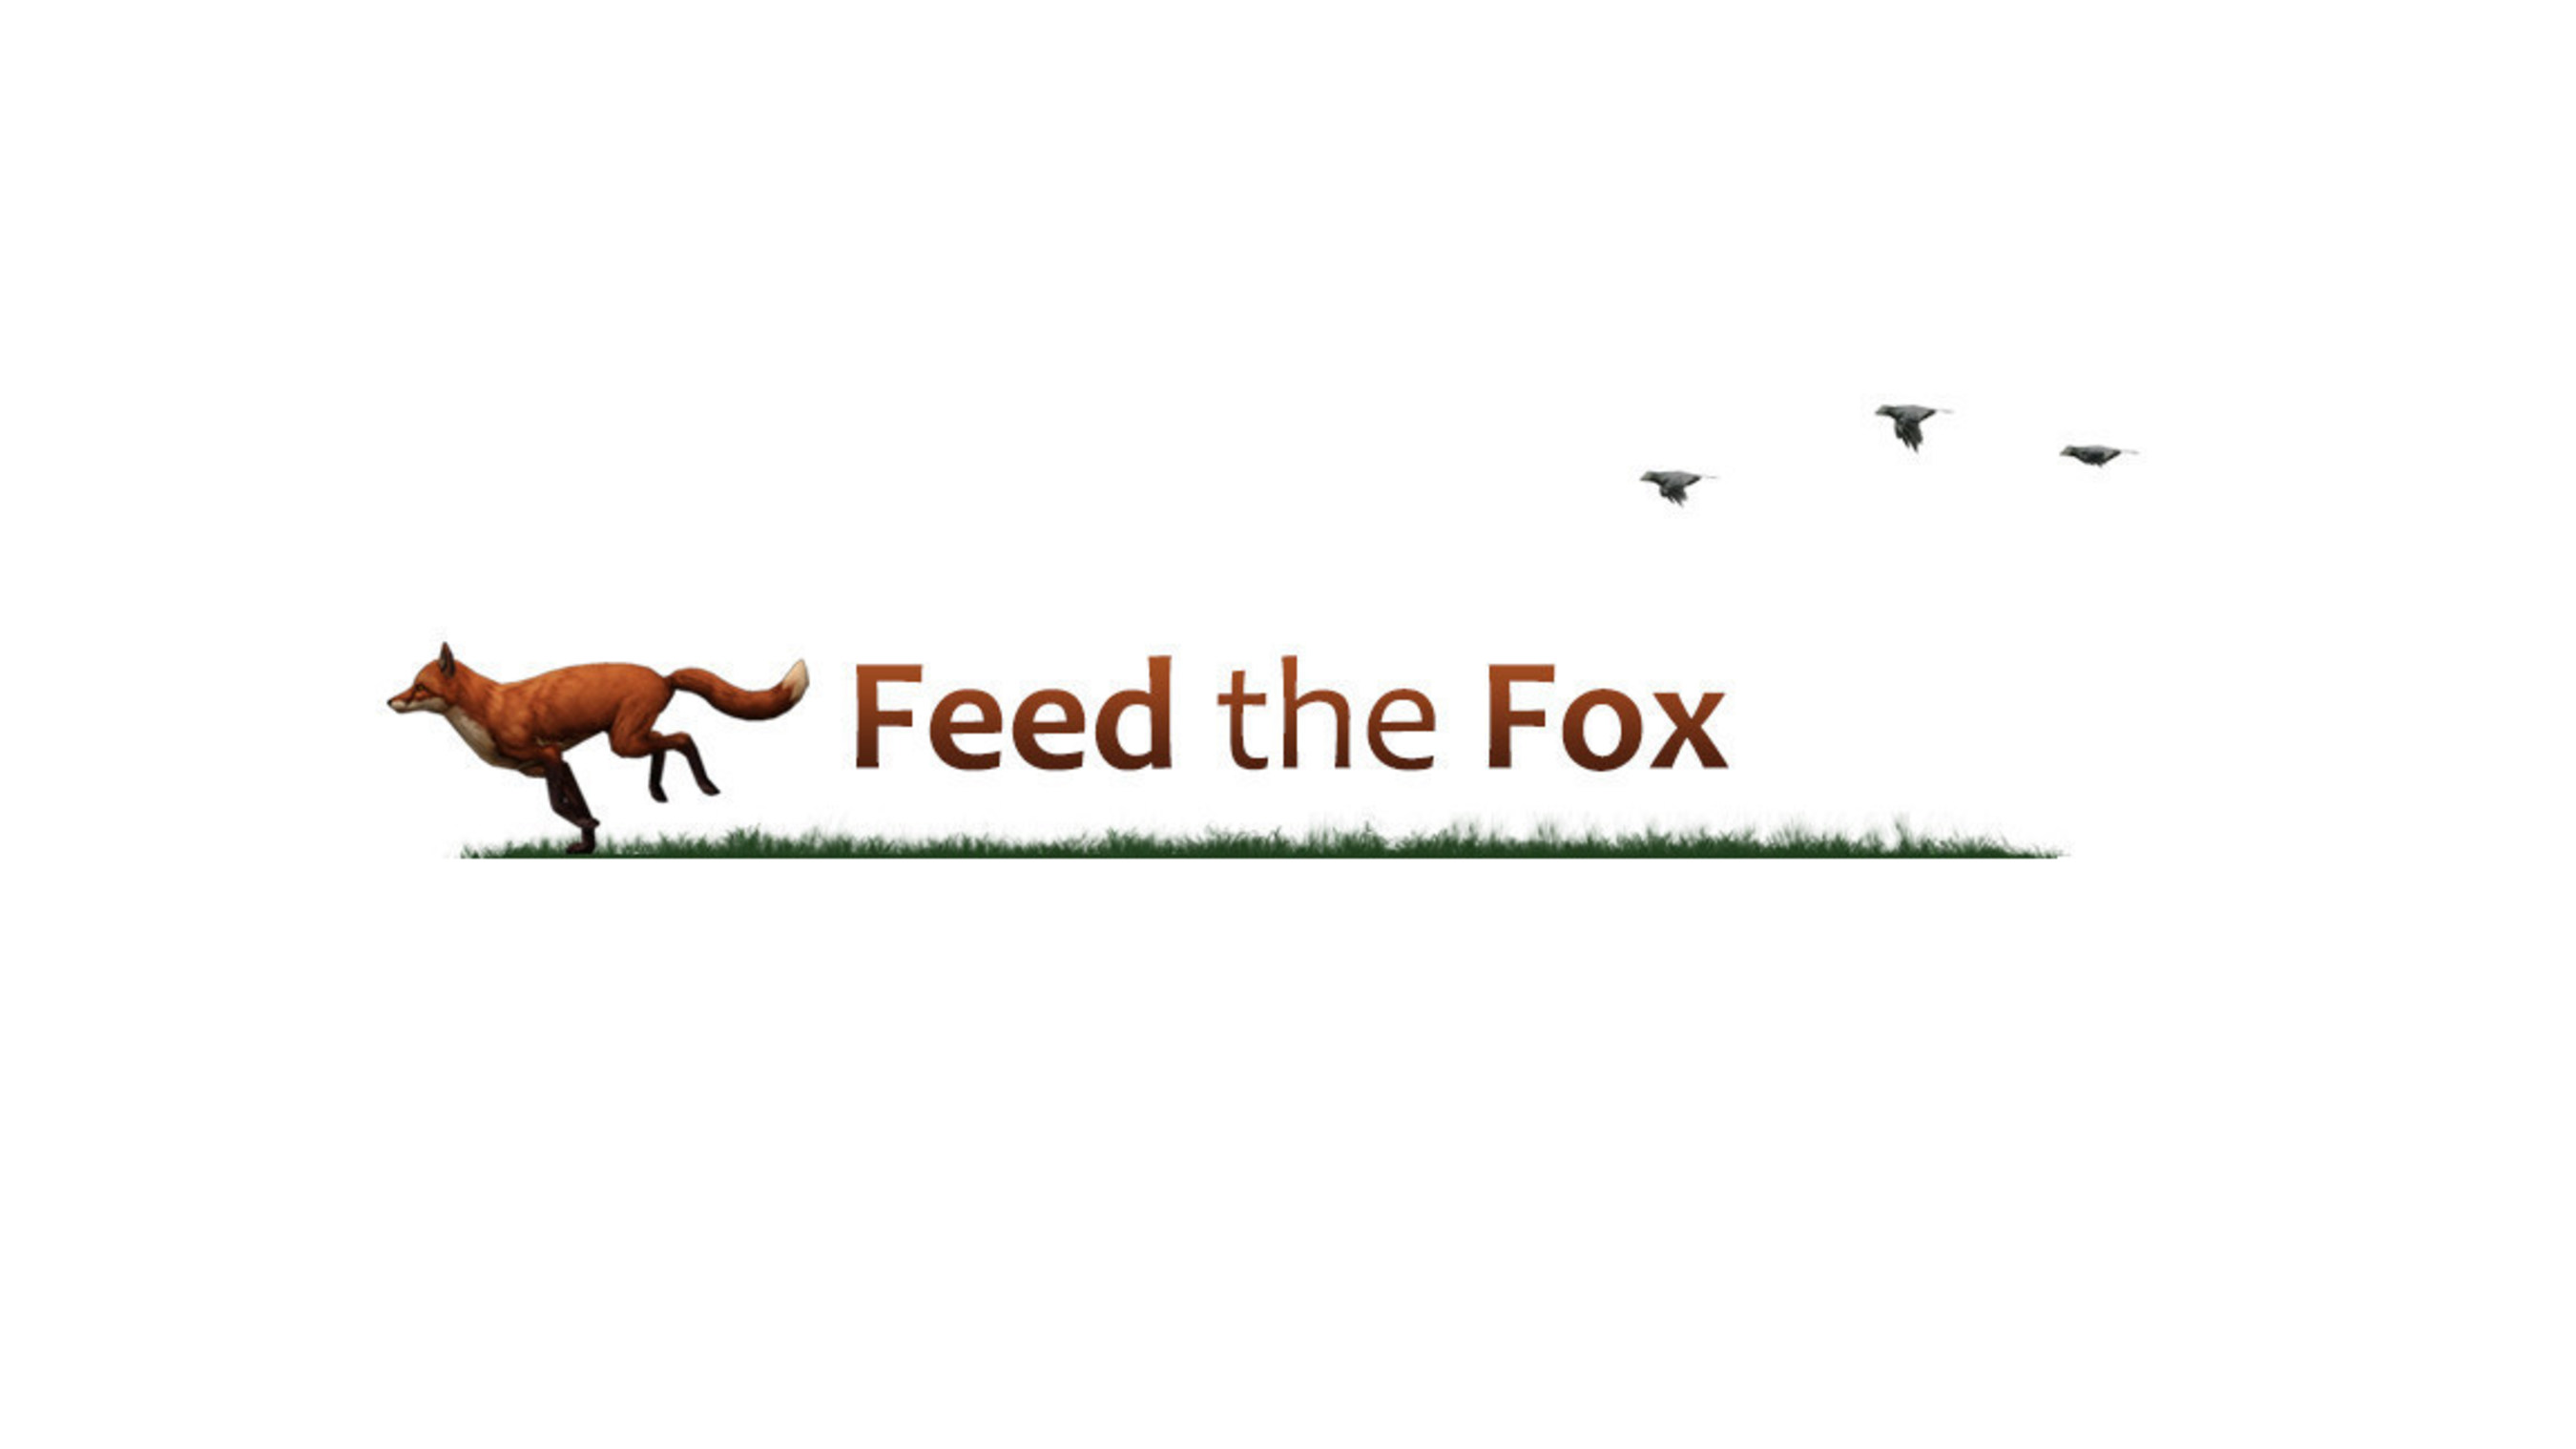 Muzzy Lane and Knewton Team Up to Feed the Fox